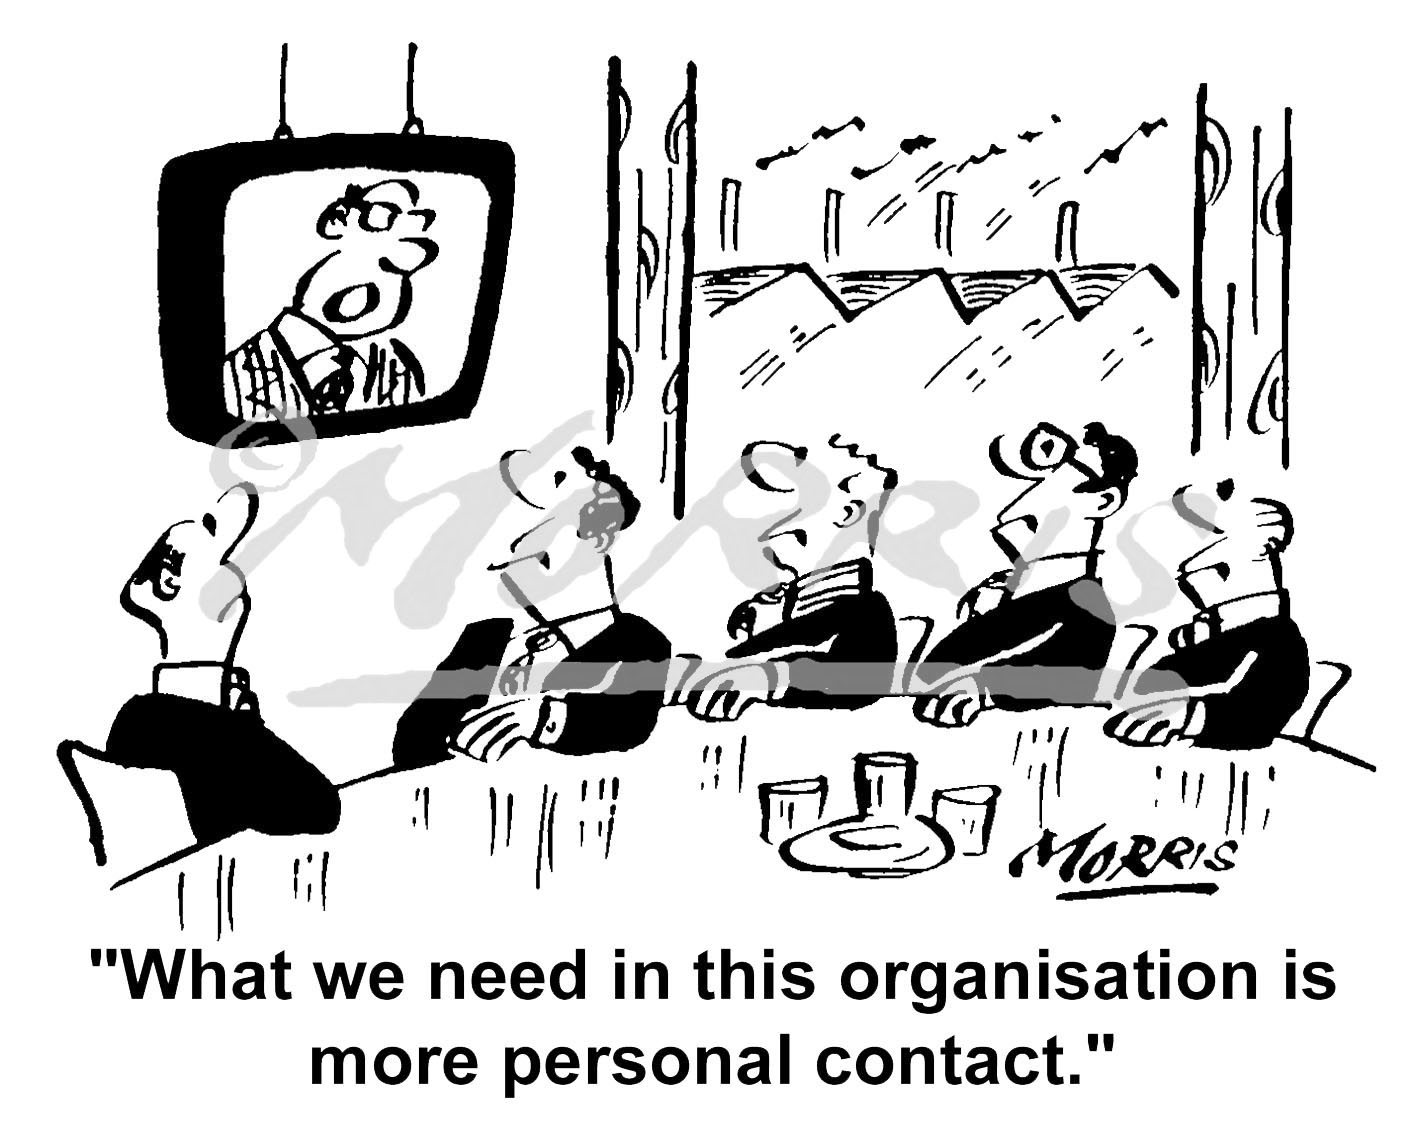 Office communication meeting cartoon – Ref: 2388bw